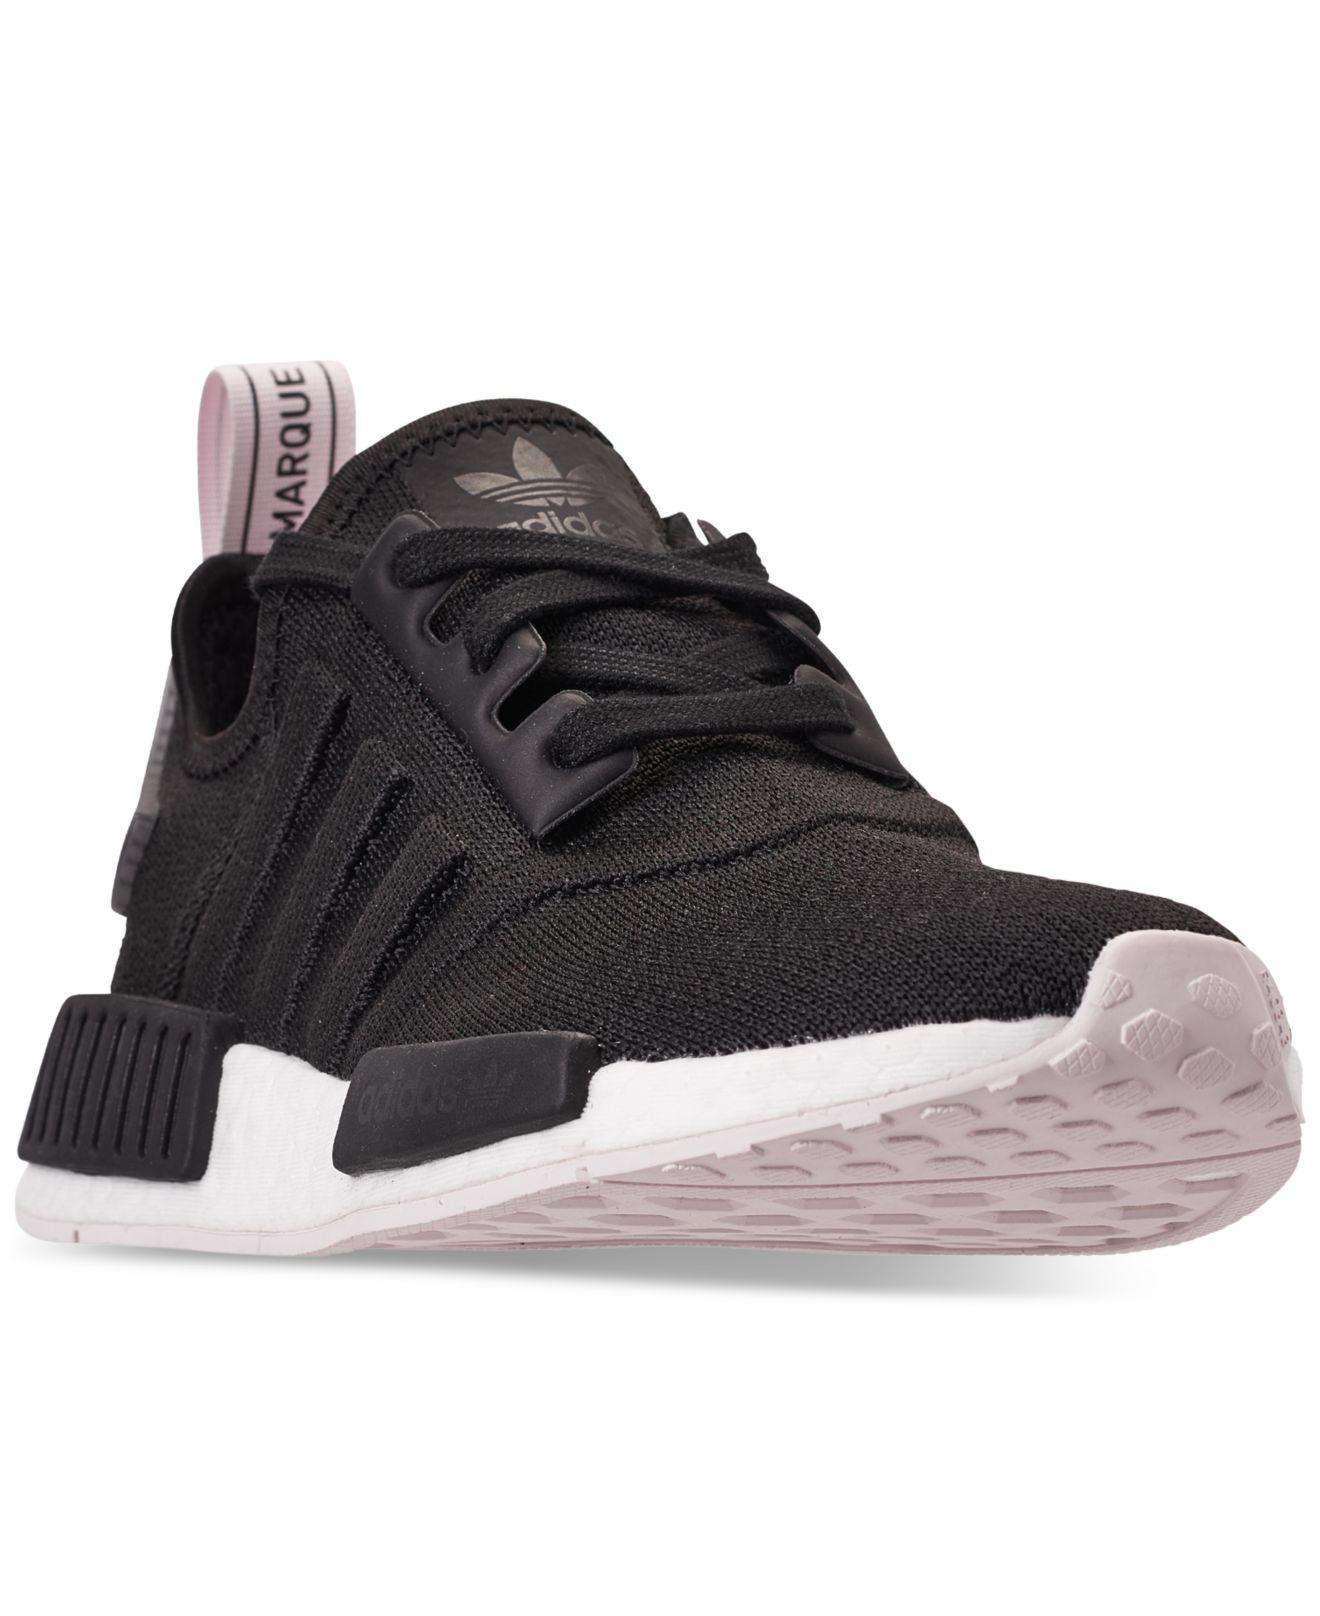 54bec287805188 Lyst - adidas Nmd R1 Casual Sneakers From Finish Line in Black